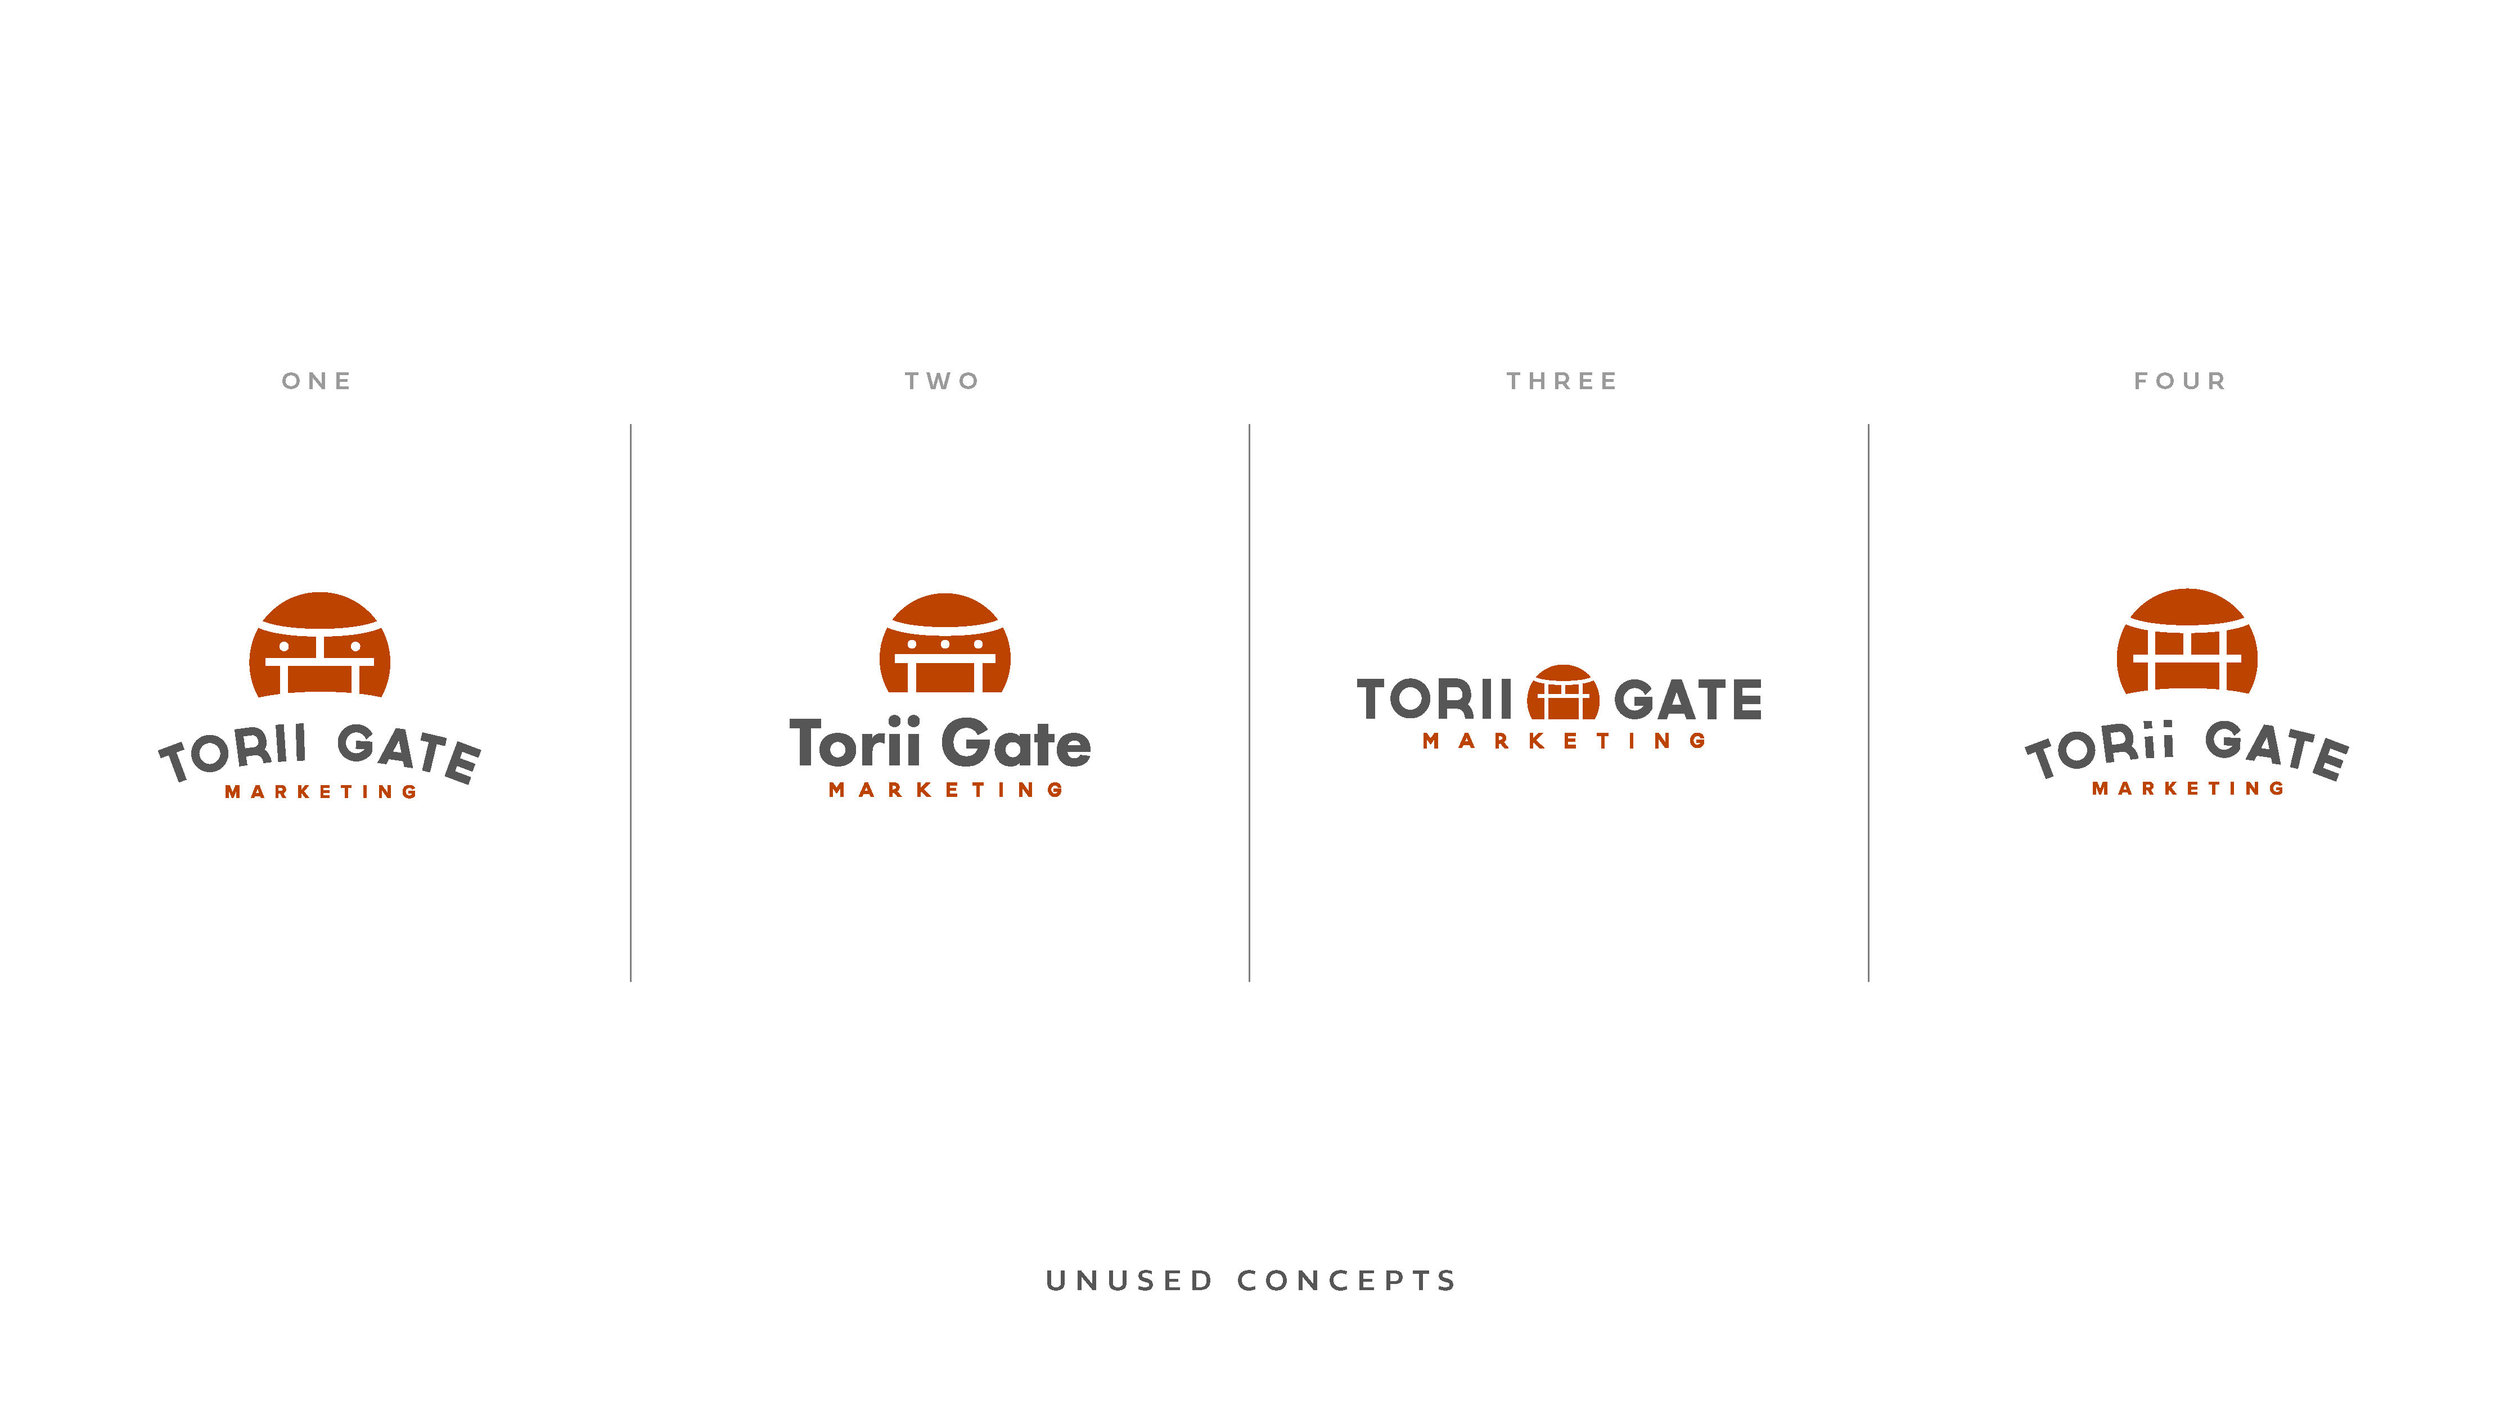 TGM_Revised_Logos_AR_Page_6.jpg